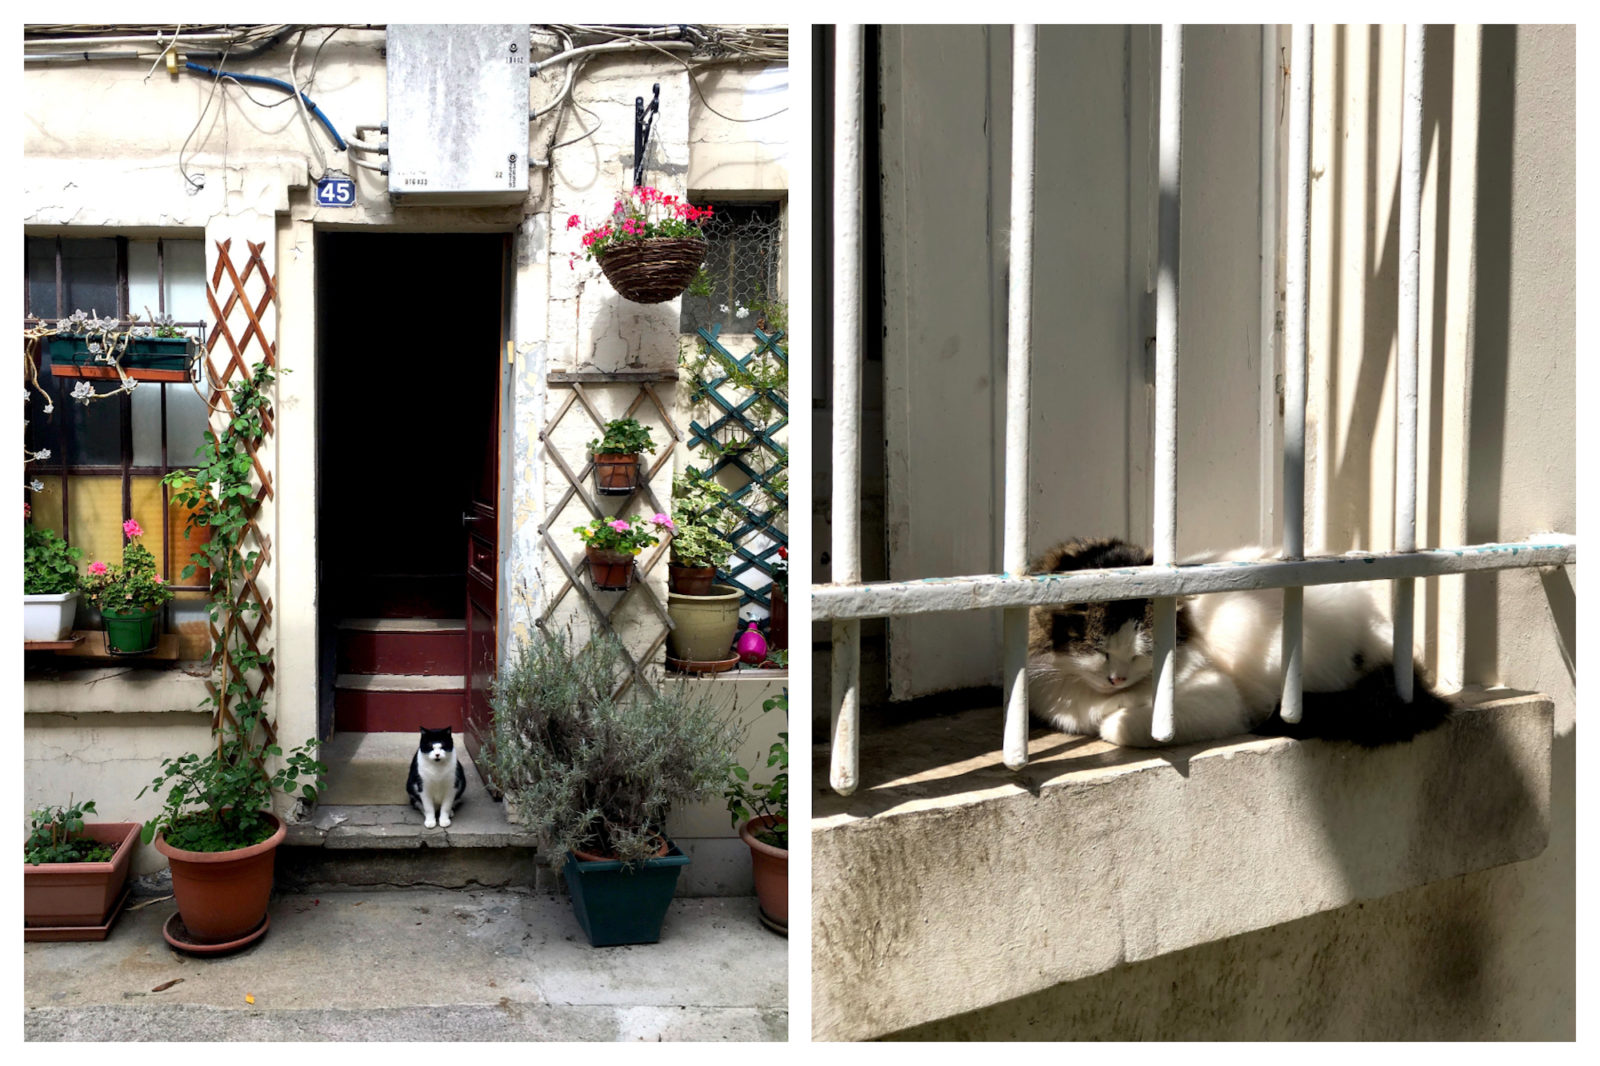 A black and white cat patiently sitting on a stone door step surrounded by plants and potted flowers in Paris (left). A white and brown cat sleeping on a window sill behind its irons bars in Paris (right).